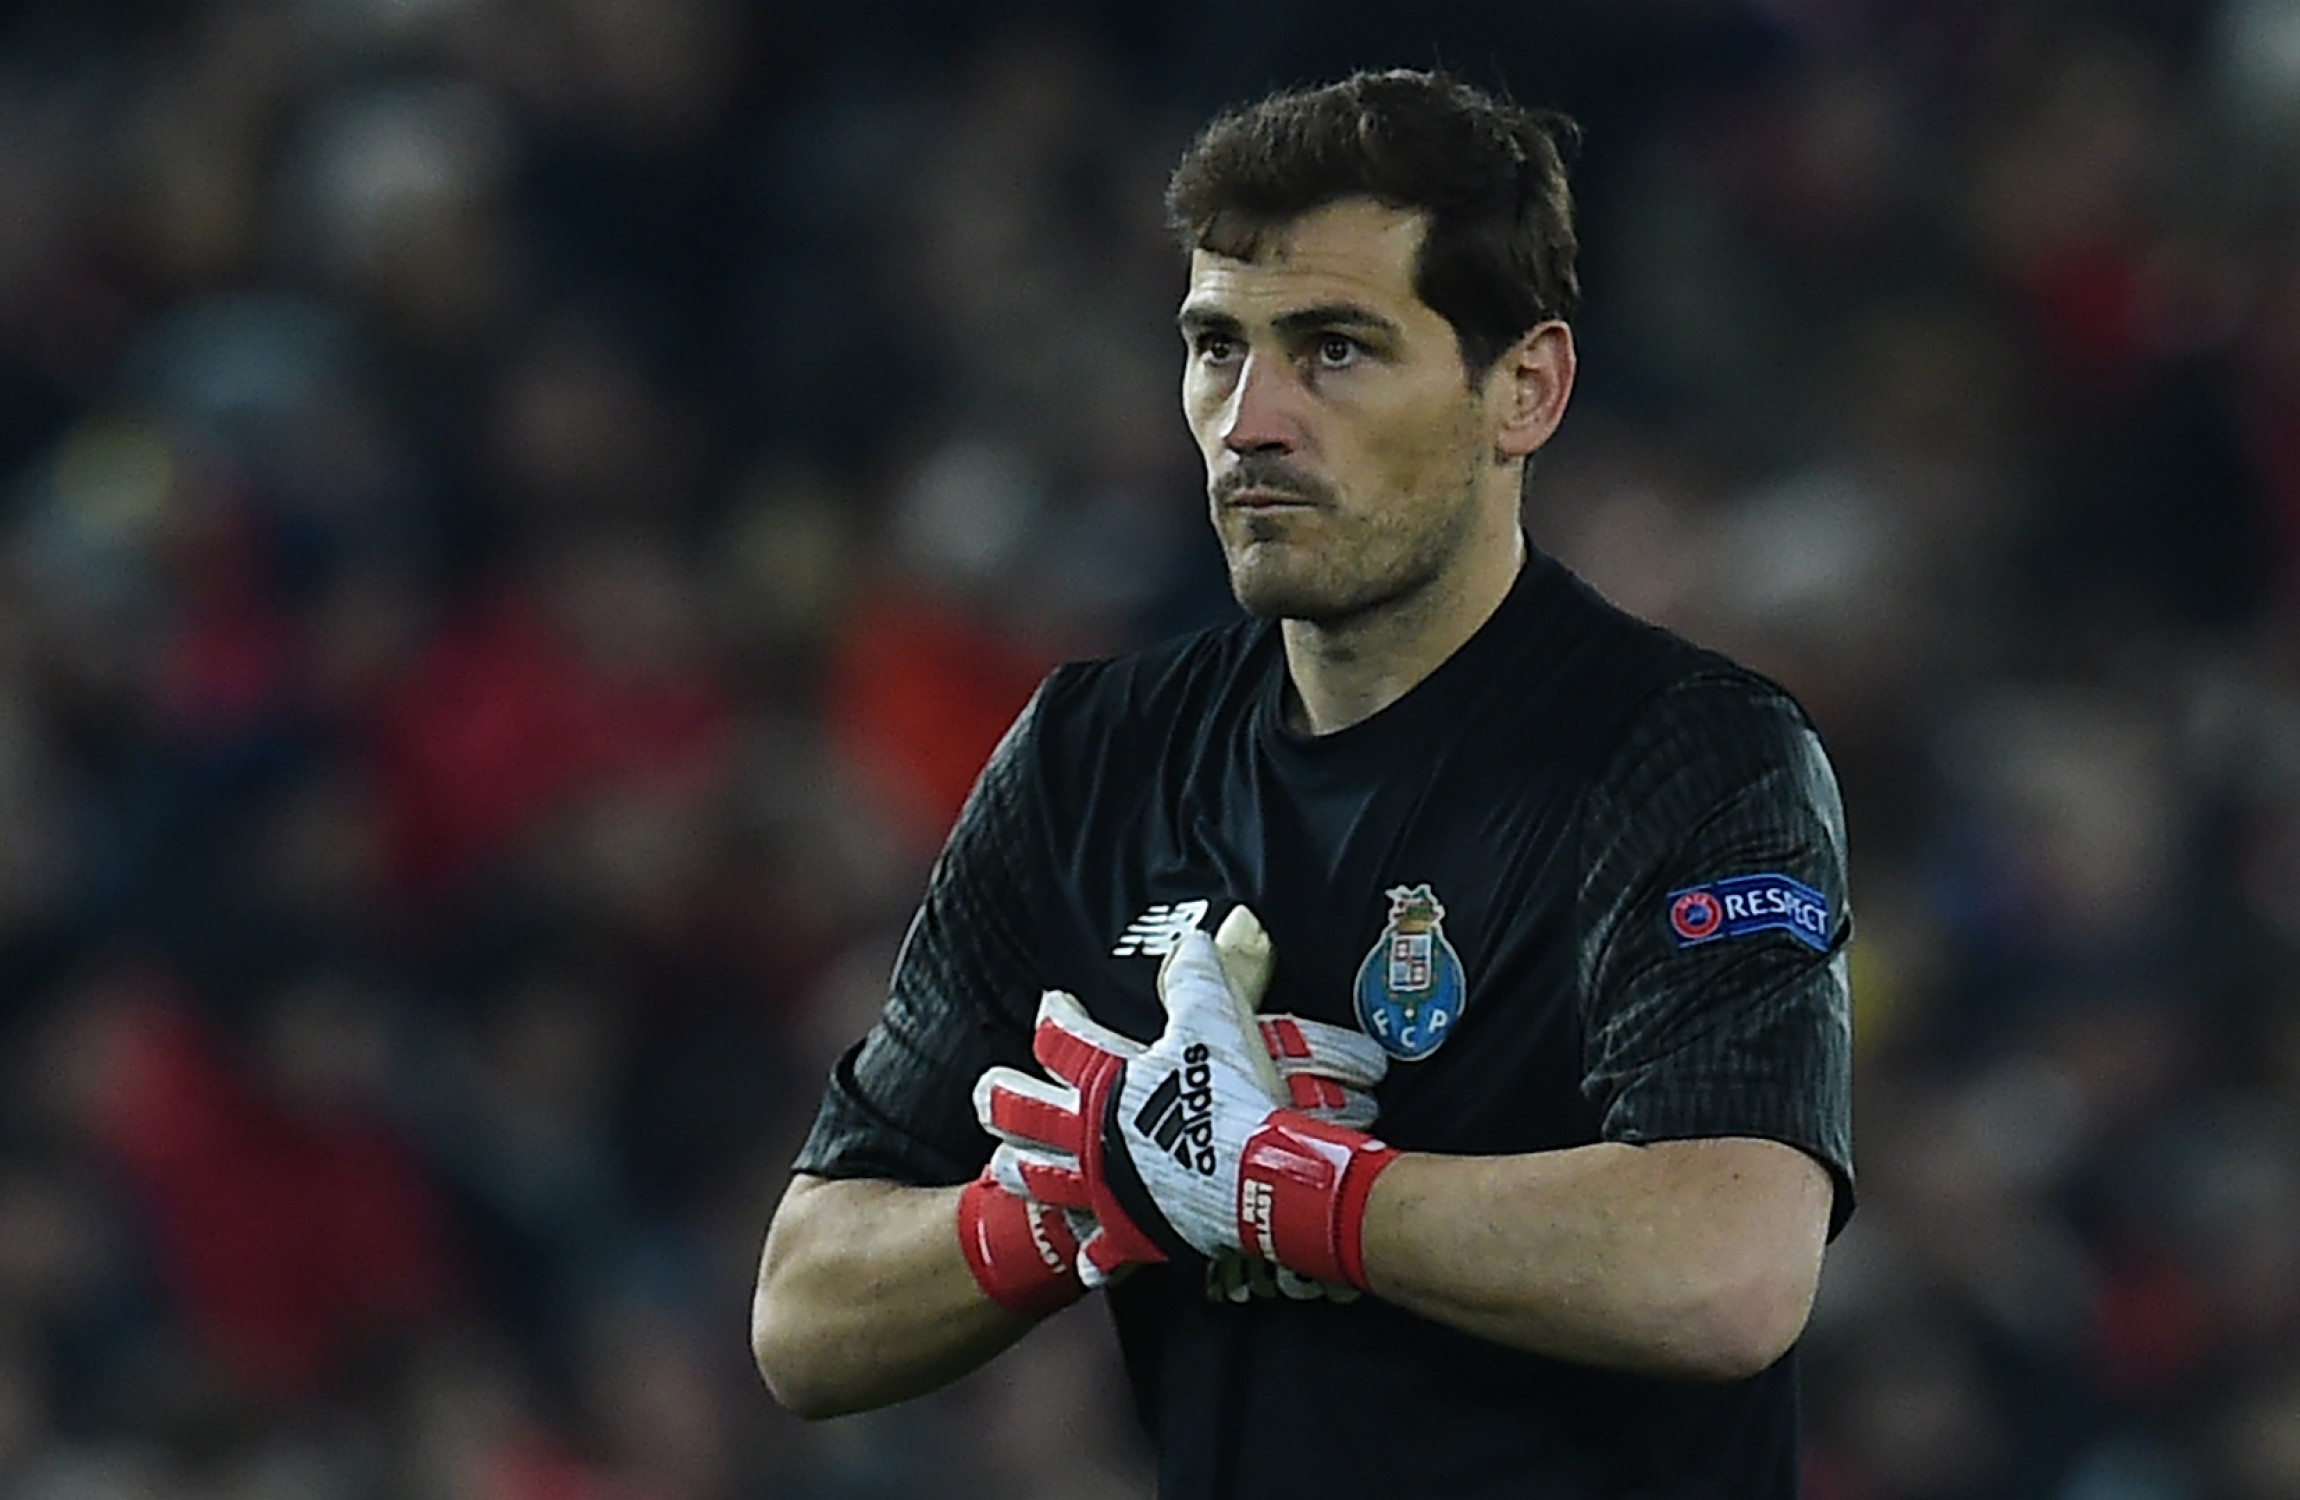 Julio Cesar reveals Jose Mourinho's explosive text message about Iker Casillas